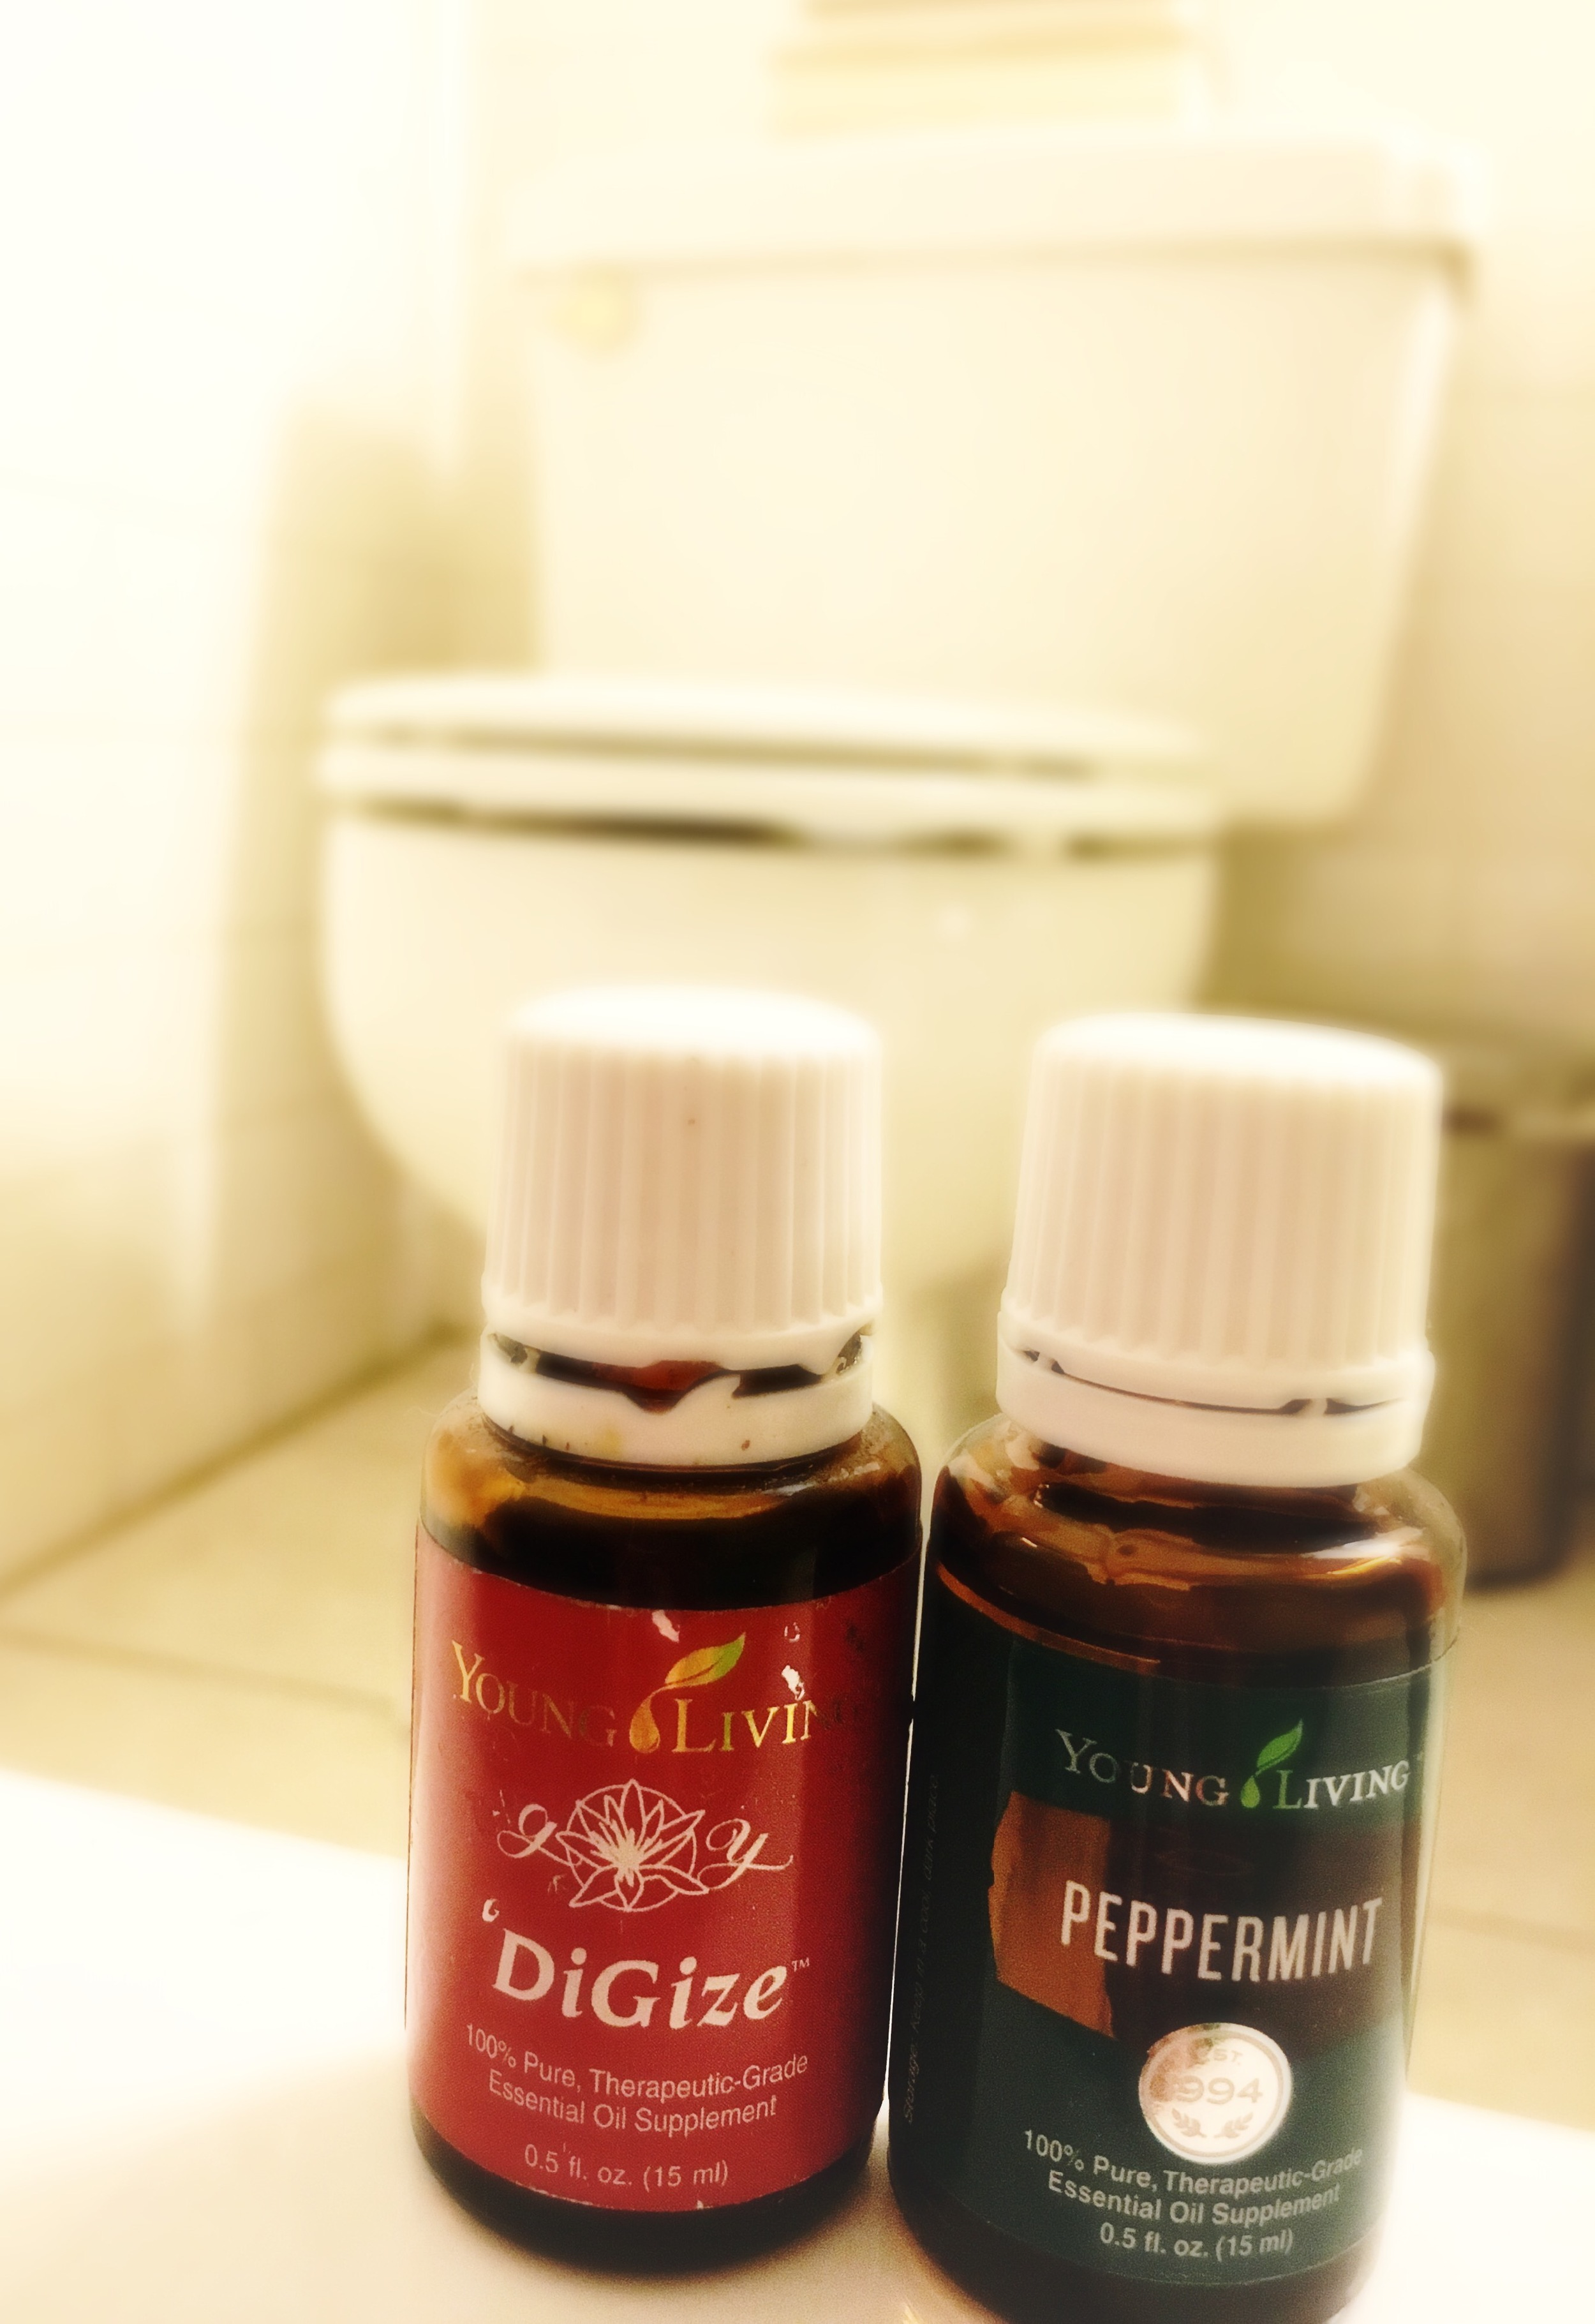 Spend time with your family...not the bathroom with the help of DiGize and Peppermint essential oils.